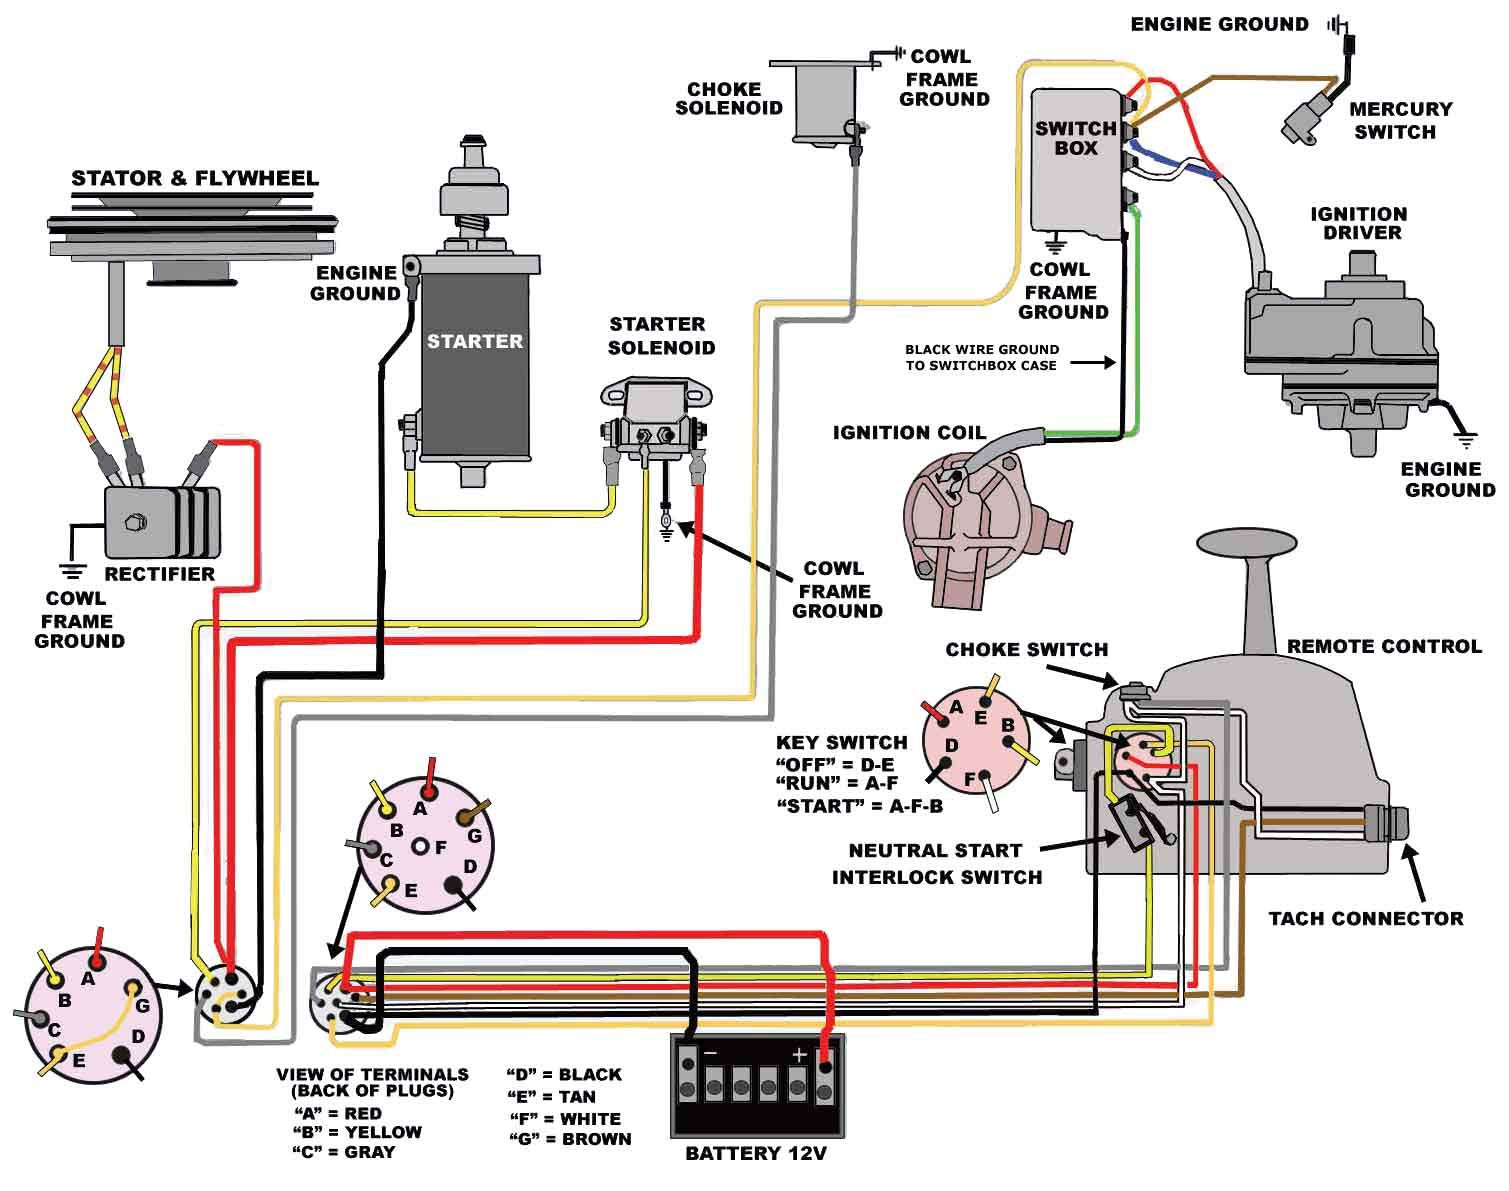 13cfb2d962bcd0c03103625817b7d51d mercury outboard wiring diagram diagram pinterest mercury mercury 2 stroke outboard wiring diagram at crackthecode.co